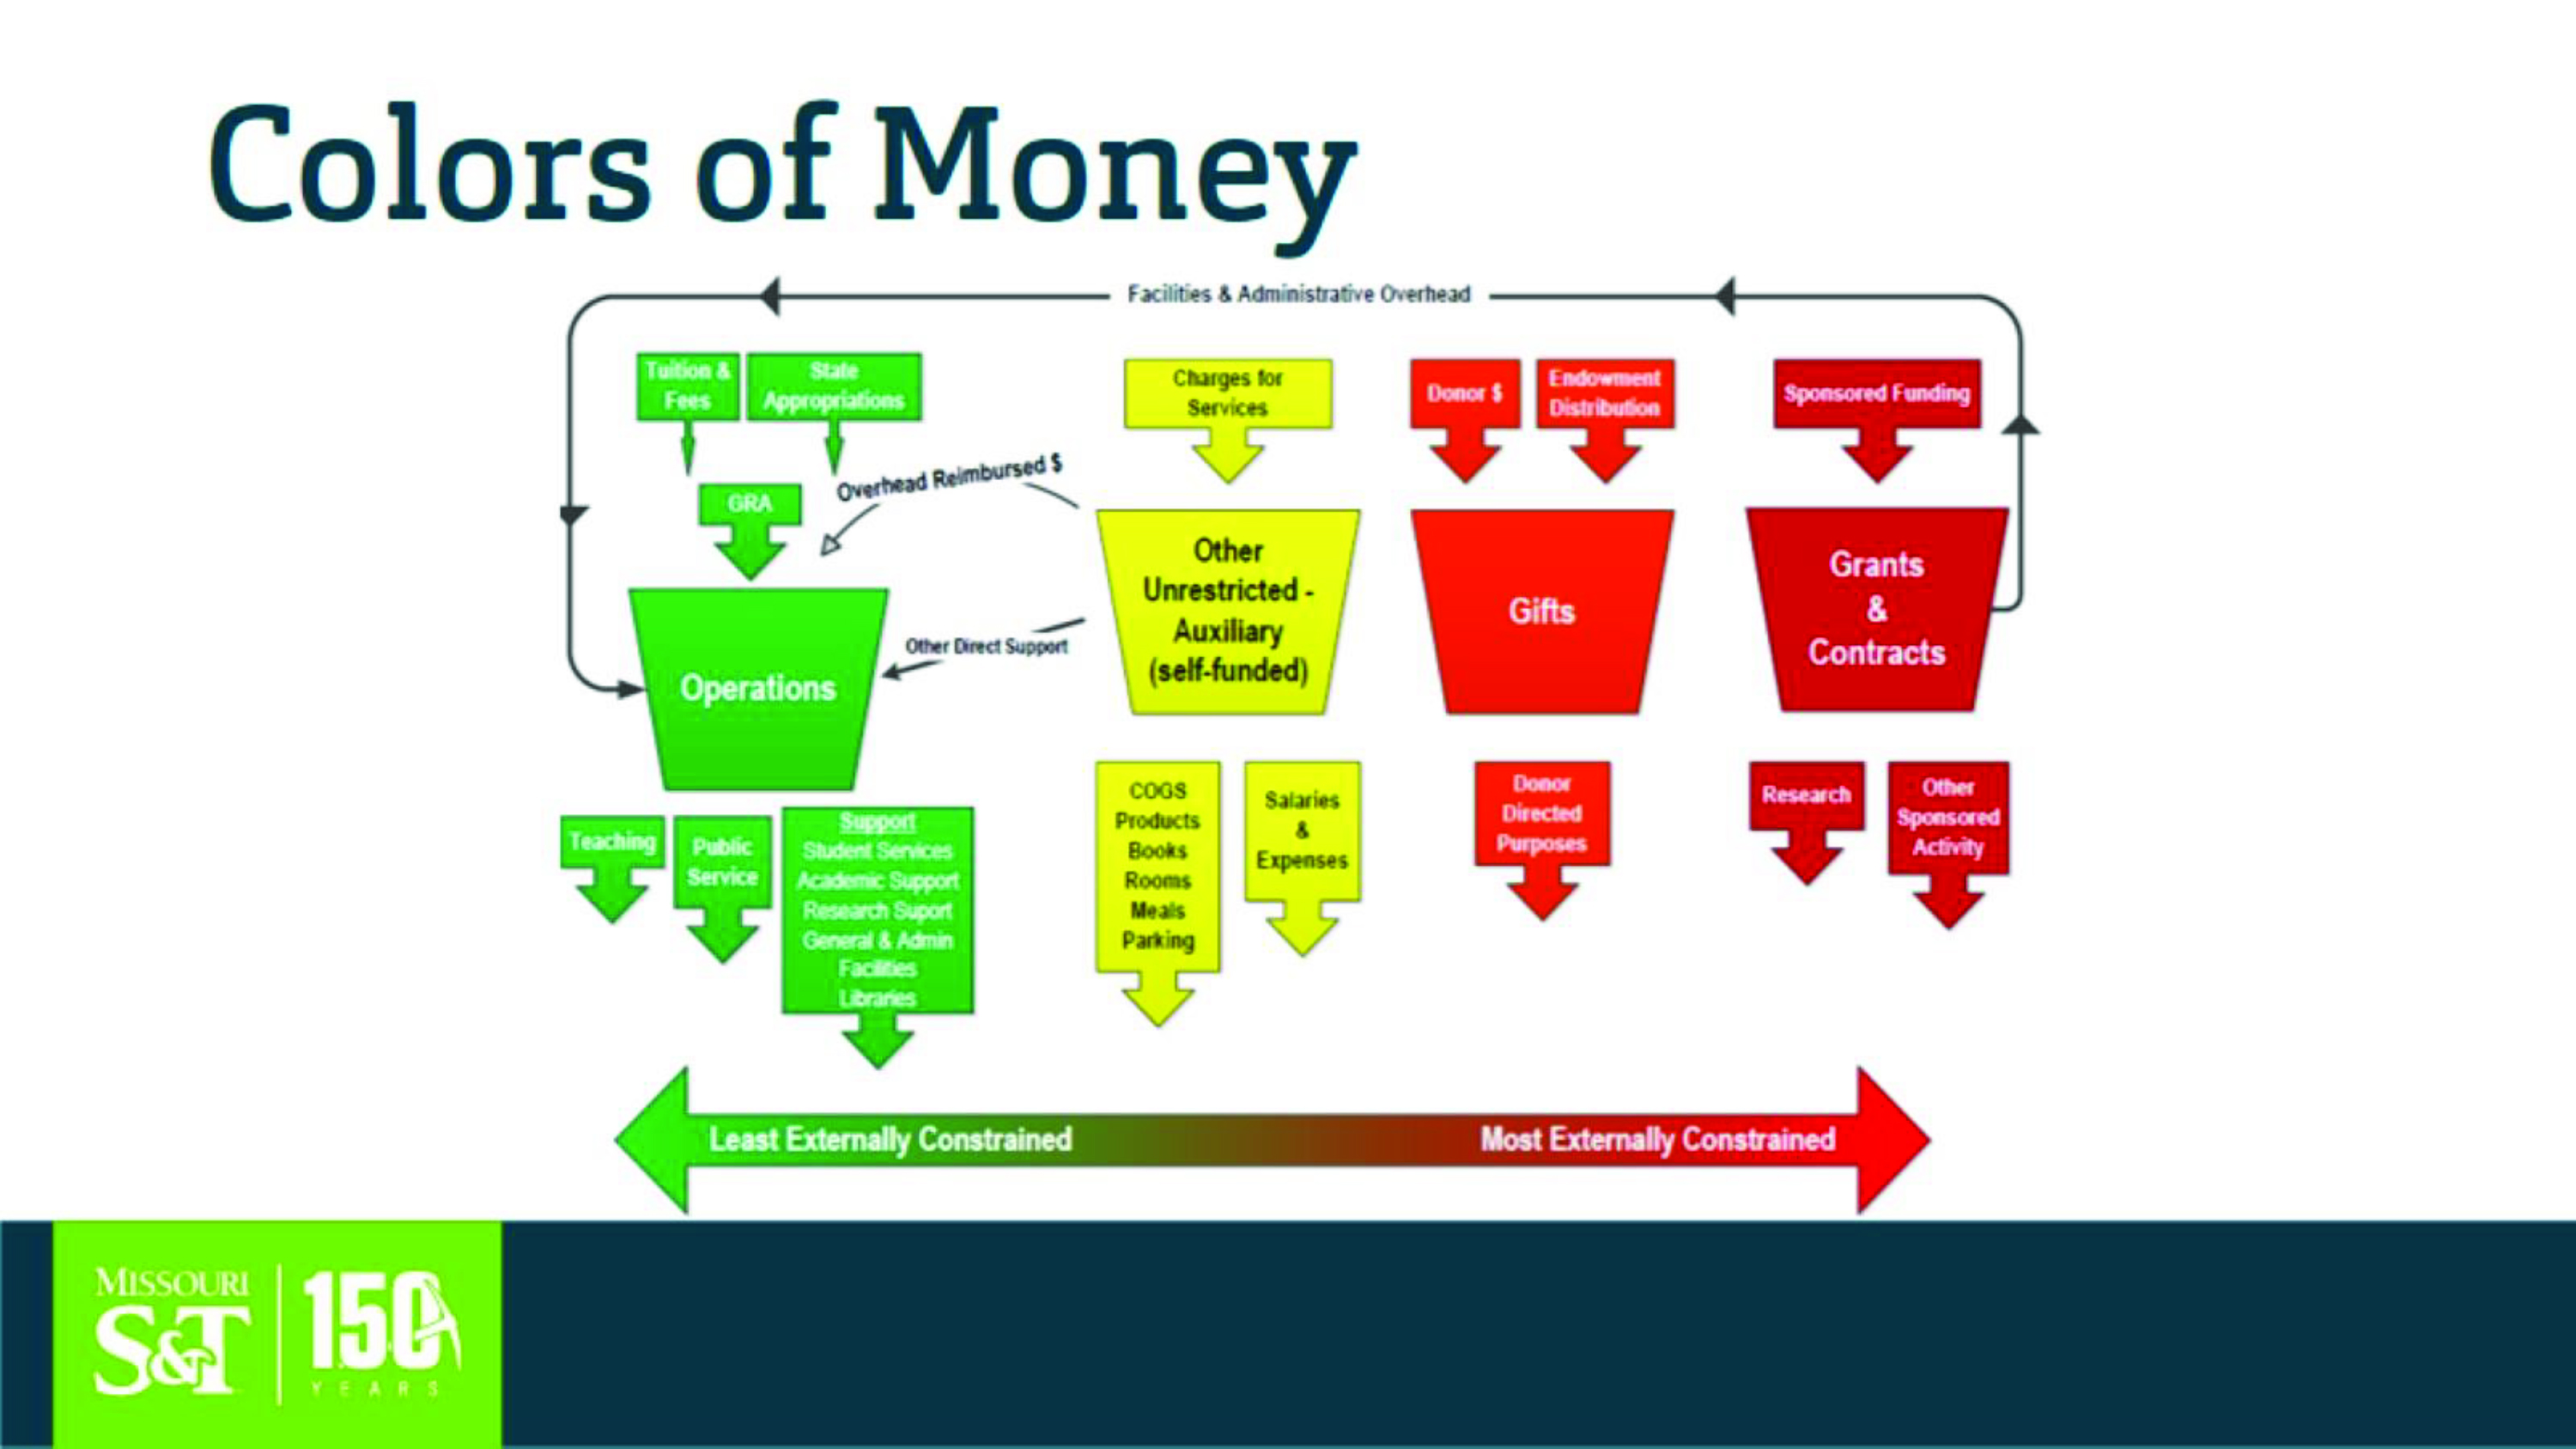 Graphic showing types of funds, ranging from least externally constrained (green) to most externally constrained funds (red)